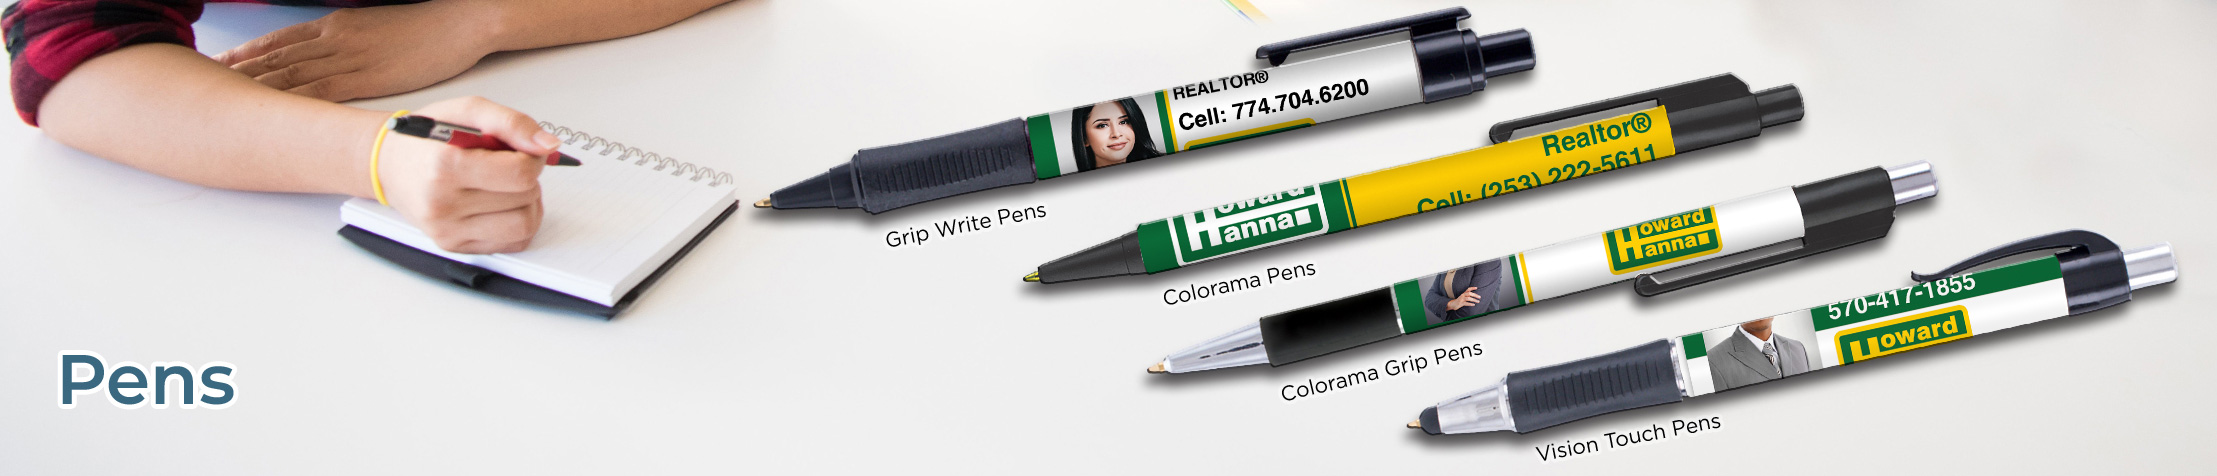 Howard Hanna Real Estate Personalized Pens - Howard Hanna promotional products: Grip Write Pens, Colorama Pens, Vision Touch Pens, and Colorama Grip Pens | BestPrintBuy.com